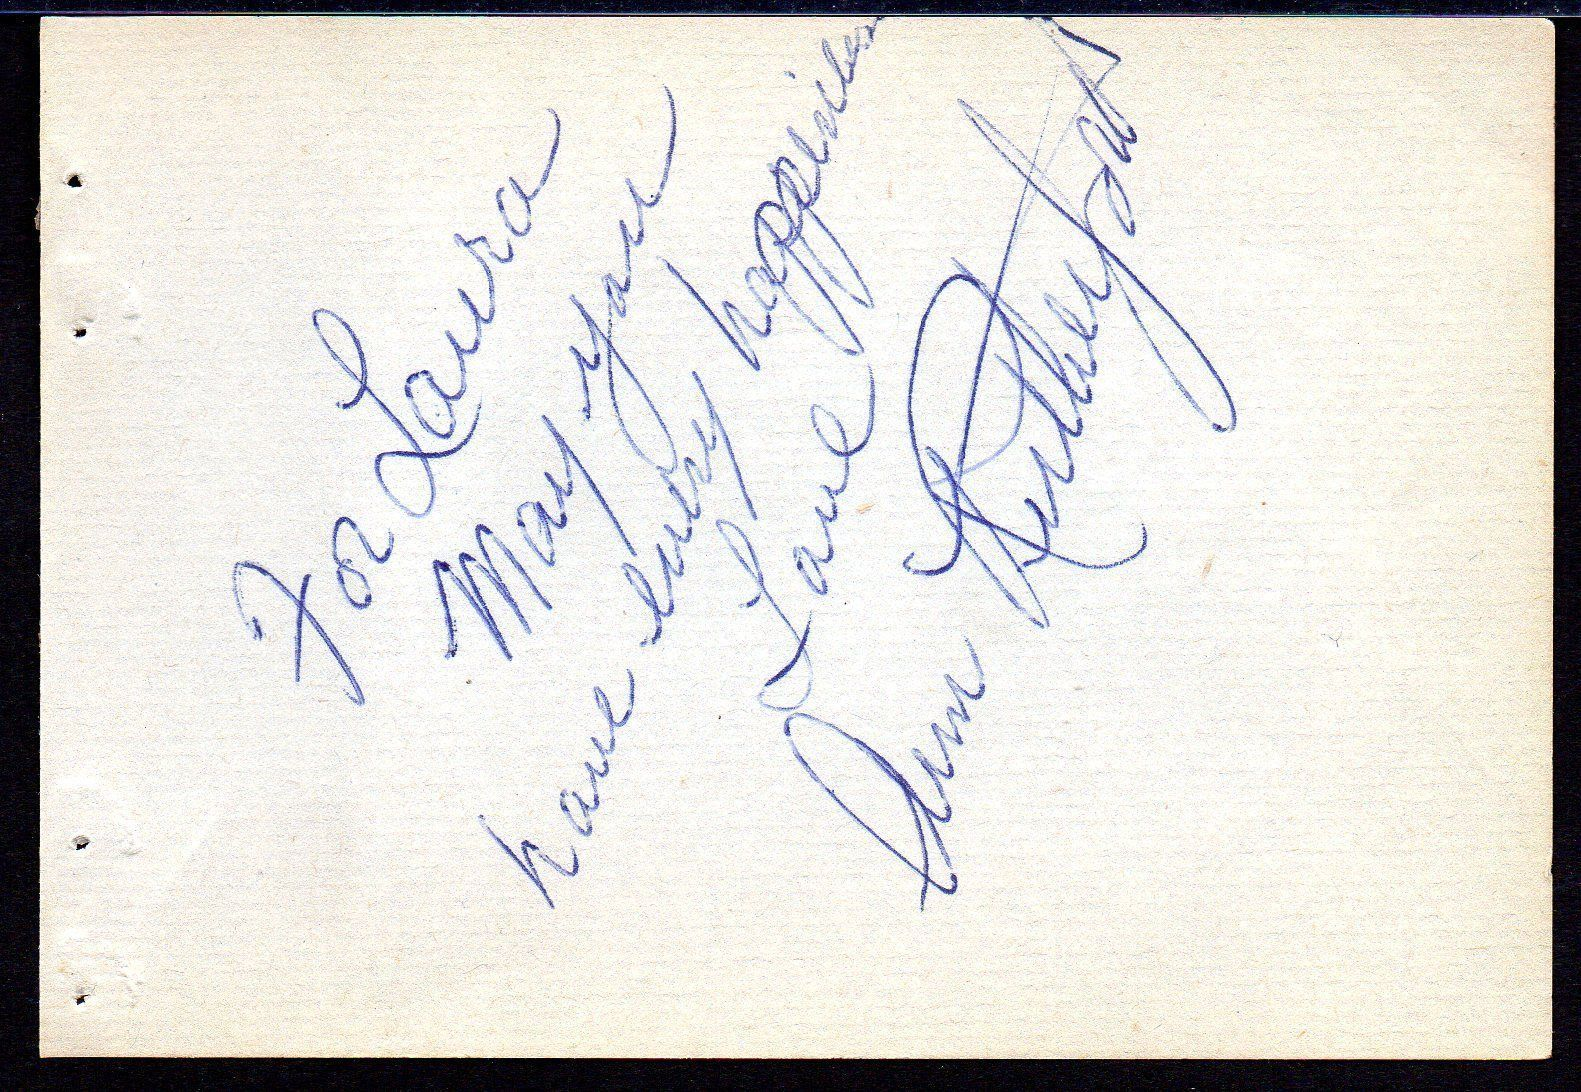 ANN RUTHERFORD Autograph signed on album page